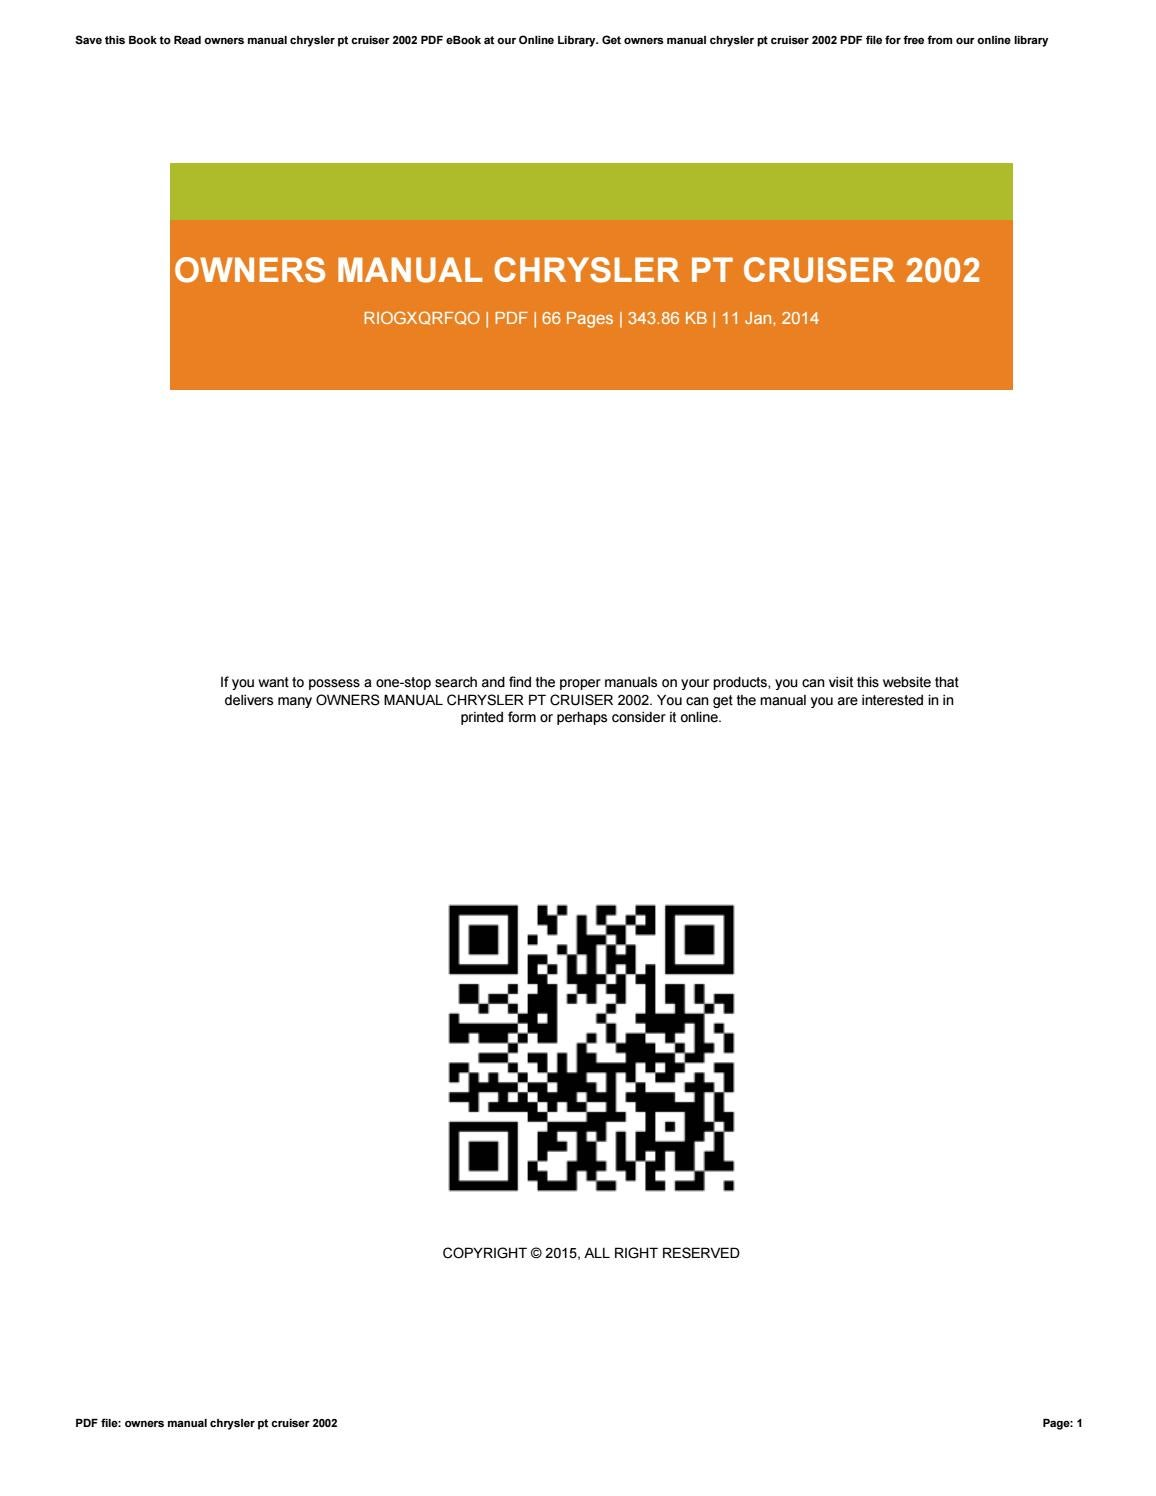 owners manual chrysler pt cruiser 2002 by mulya76naisu issuu rh issuu com  2002 Chrysler PT Cruiser Touring 2002 Chrysler PT Cruiser Touring